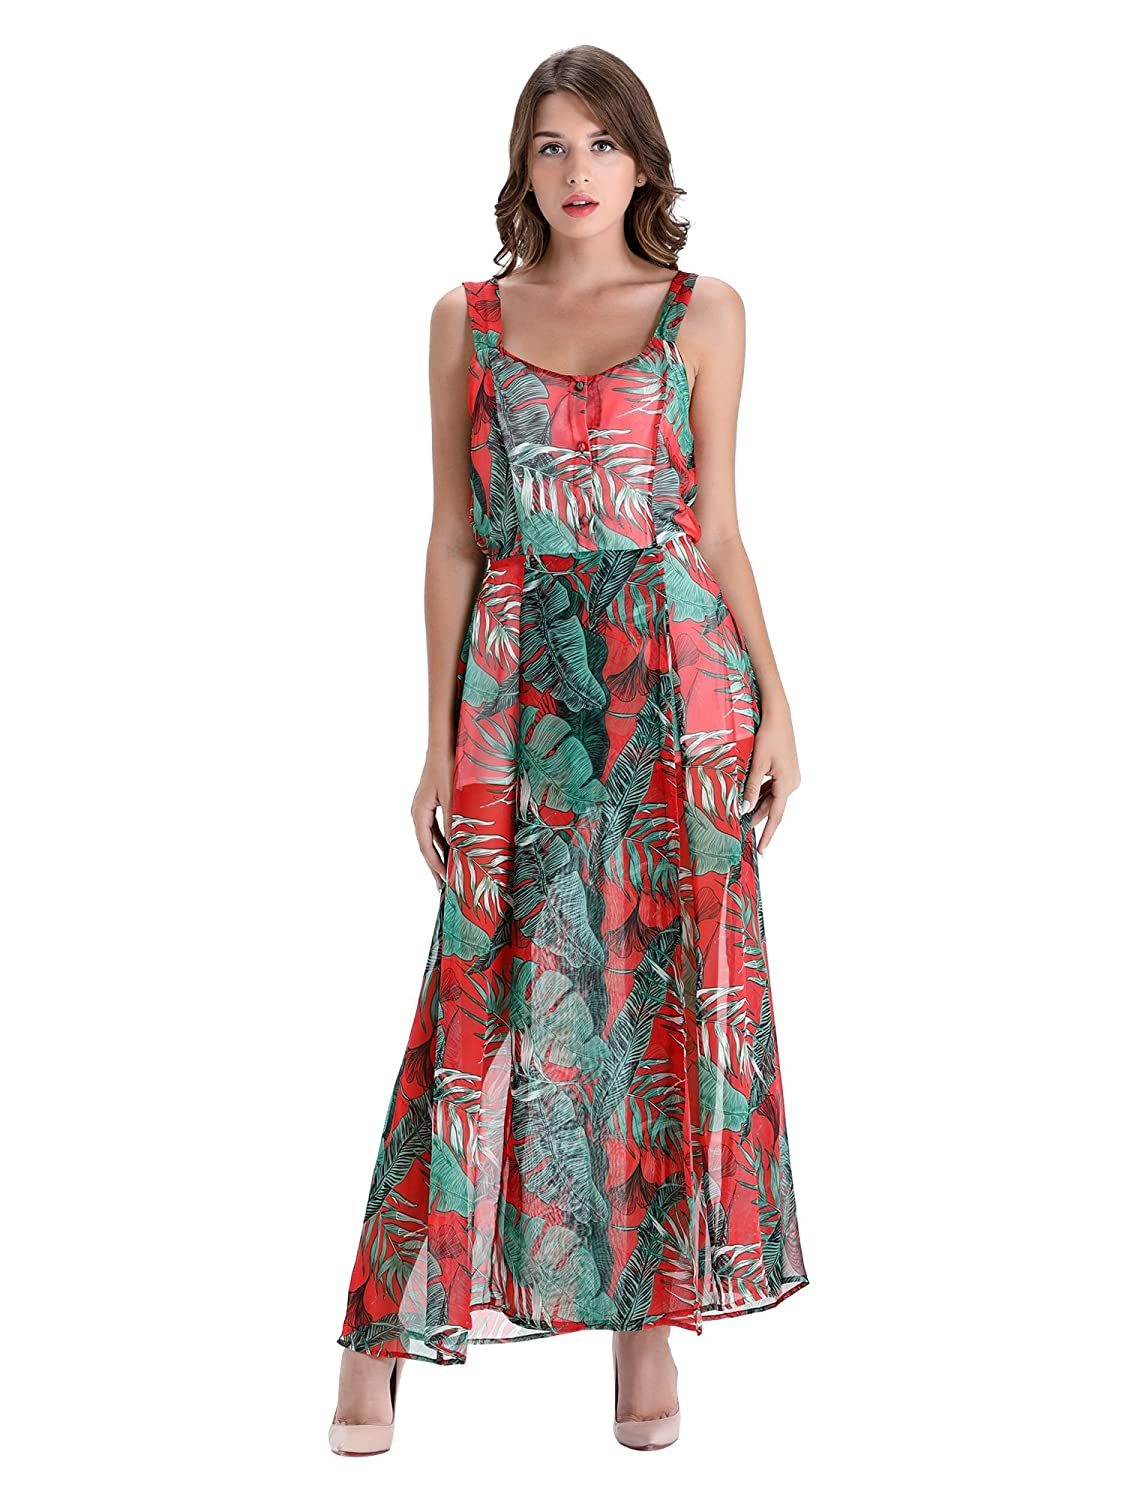 8591f51e2043b Features: Your elegance and charm will be the only thing on their mind when  they see you in the Leaves Print Maxi Dress! A green, dark yellow tropical  print ...